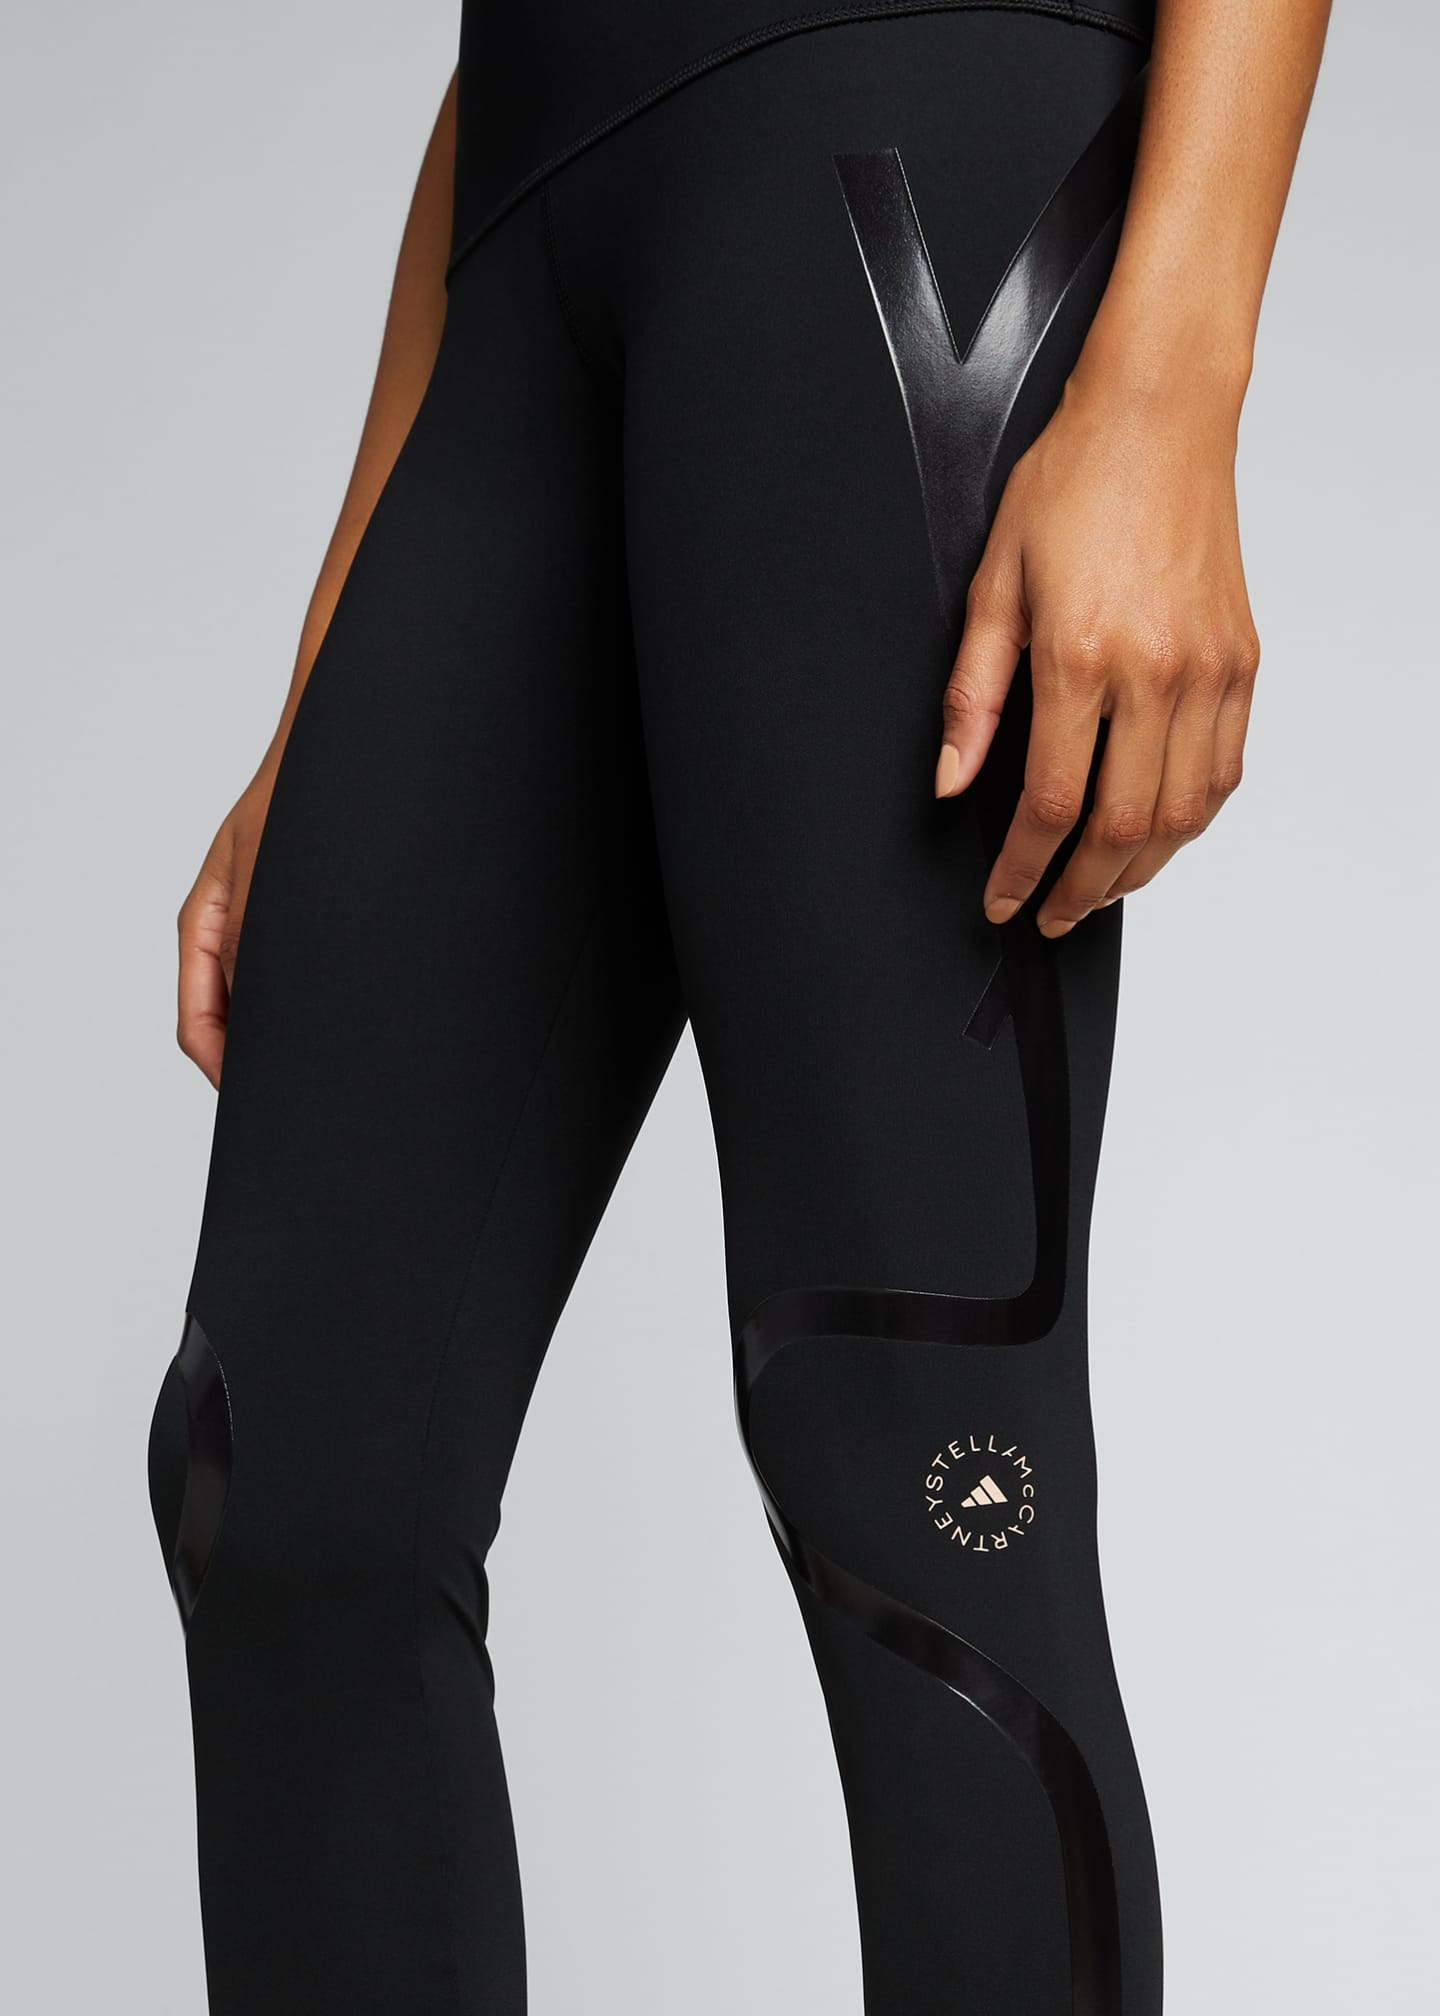 Image 4 of 5: Truepurpose Athletic Tights